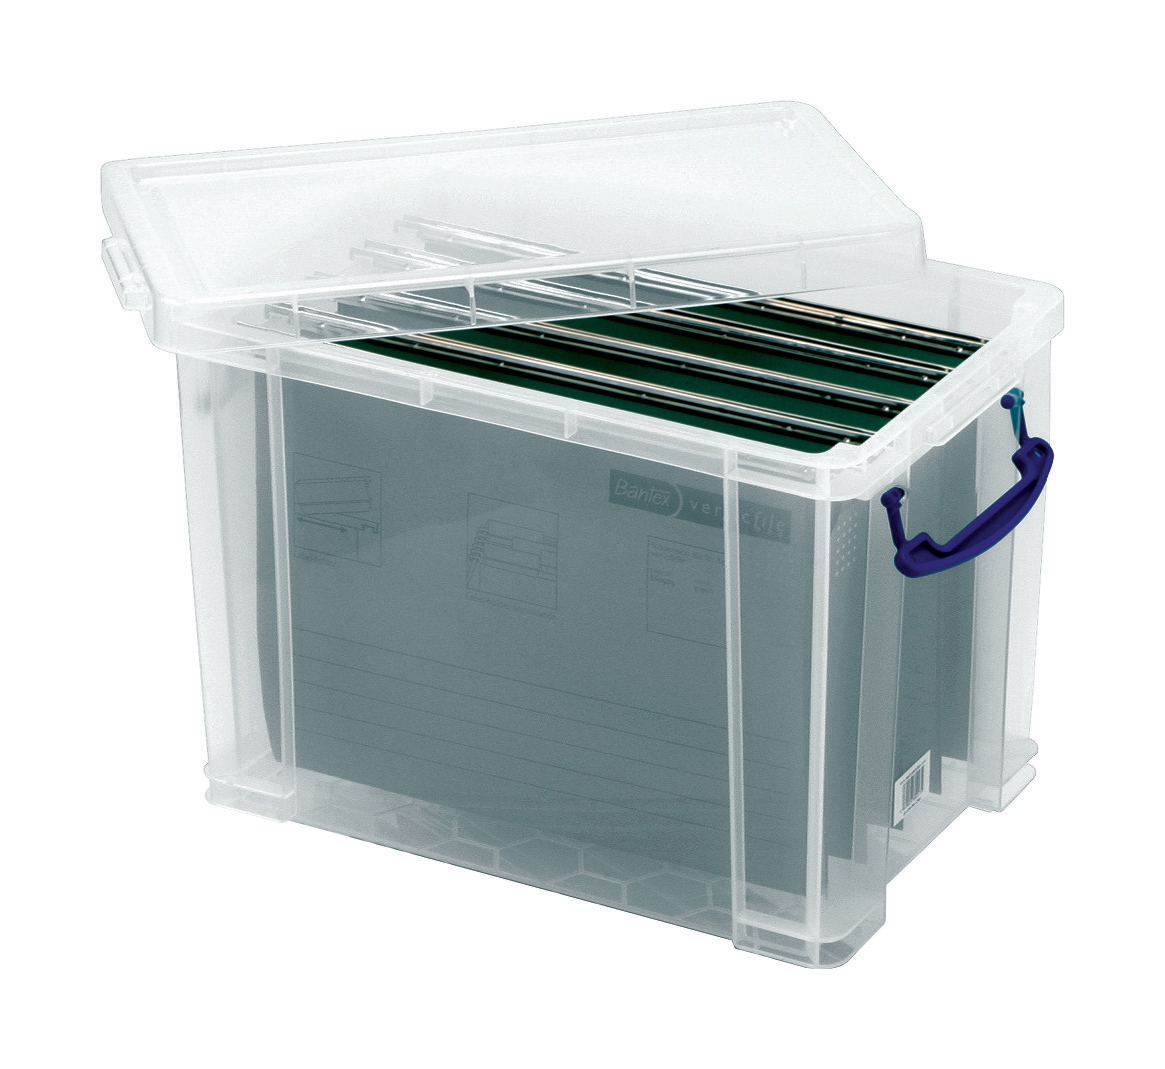 Image for Really Useful Filing Box Plastic with 10 suspension files A4 19 Litre W290xD255xH395mm Ref 19C&10susp